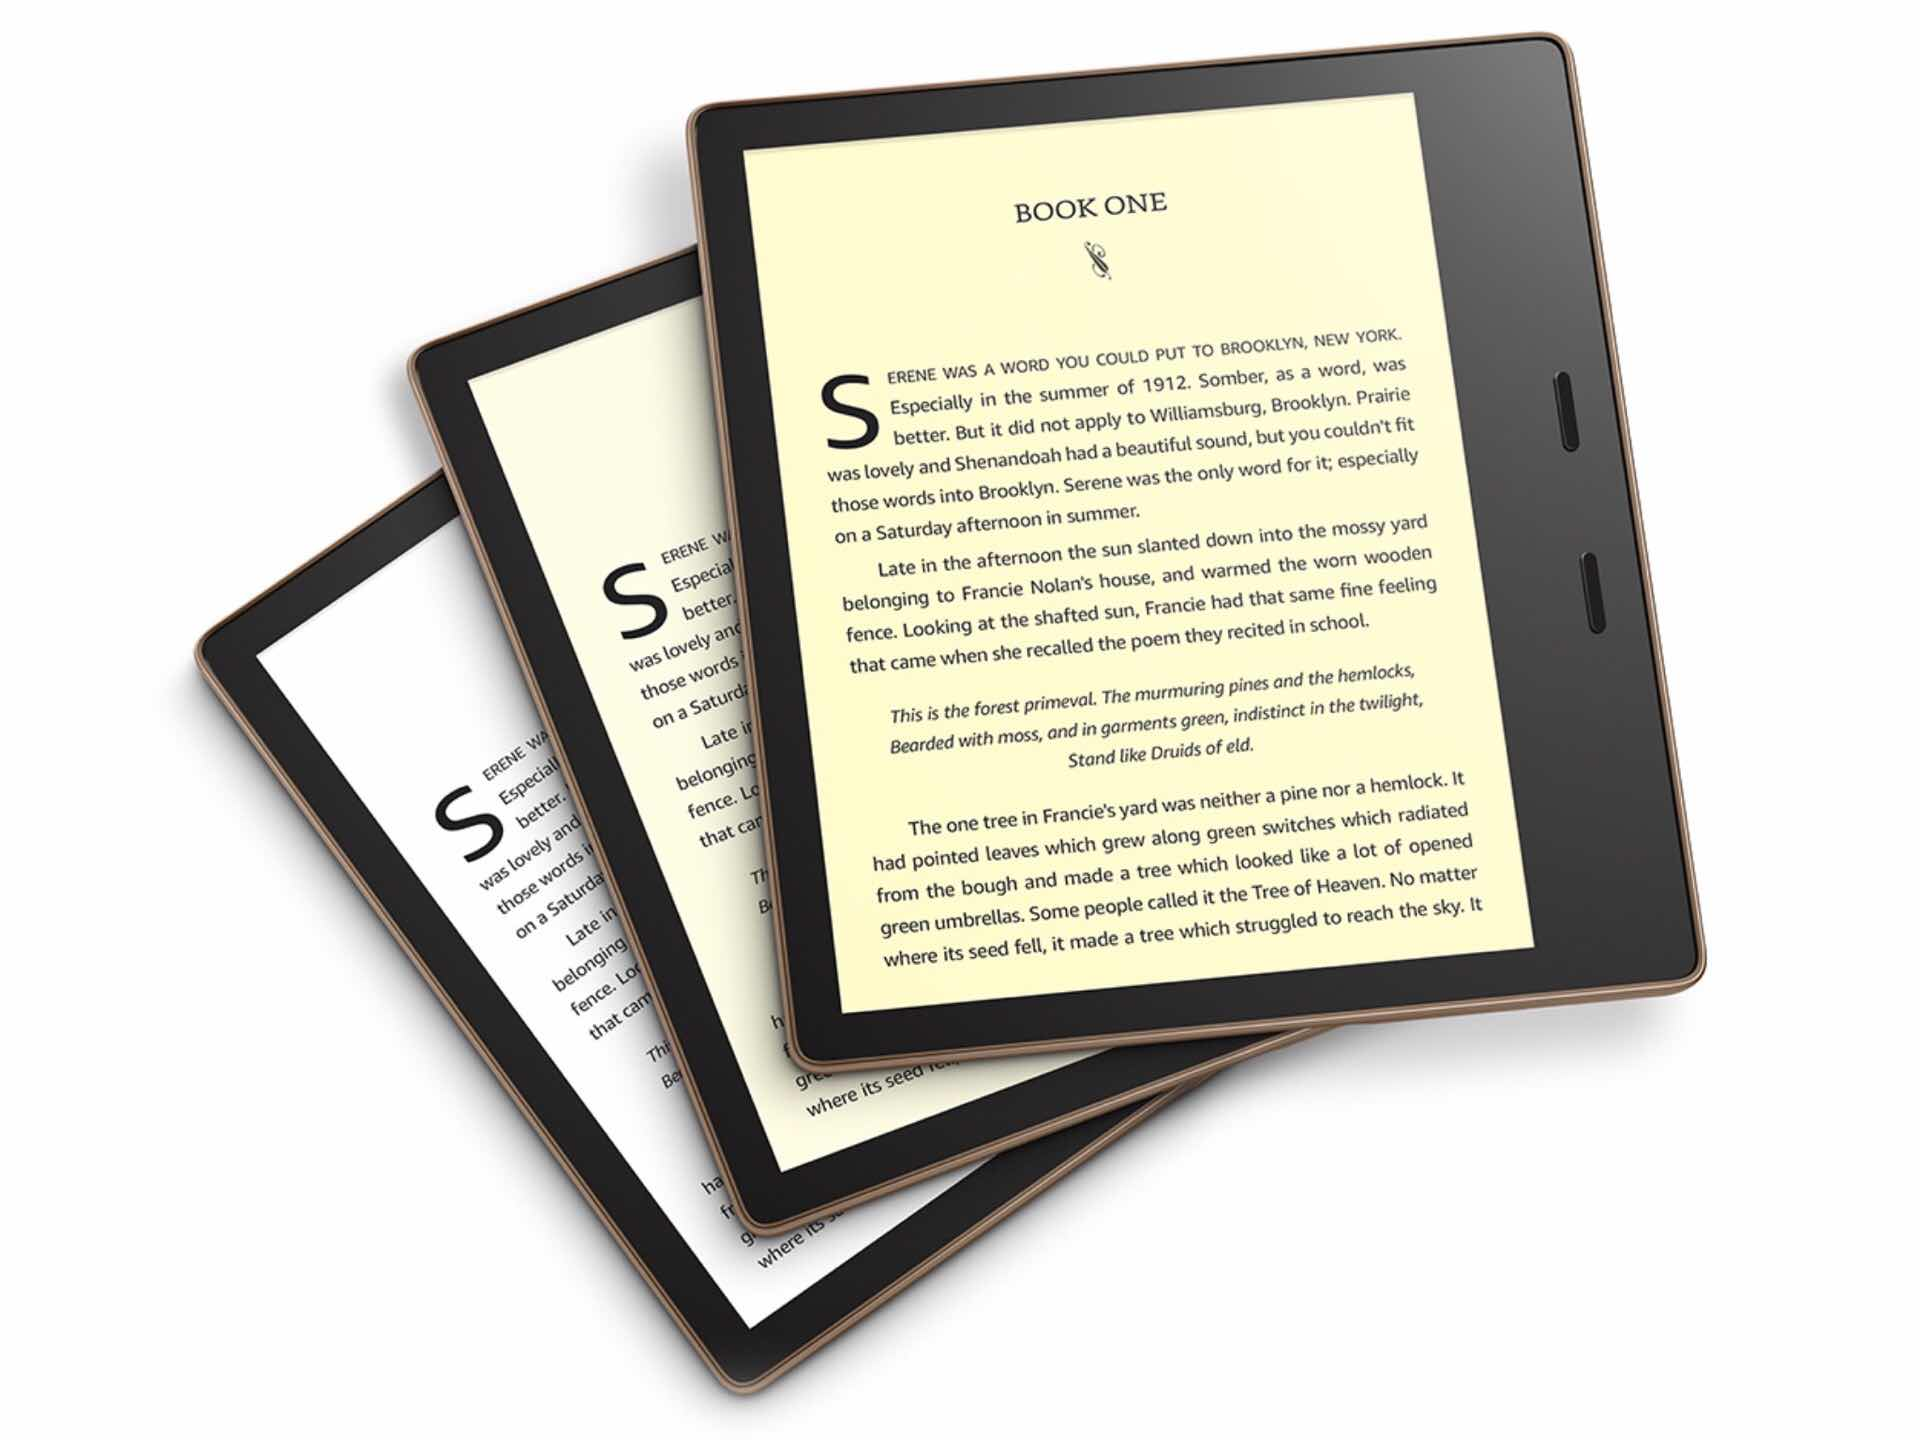 Amazon's 2019 Kindle Oasis ebook reader. (from $250)